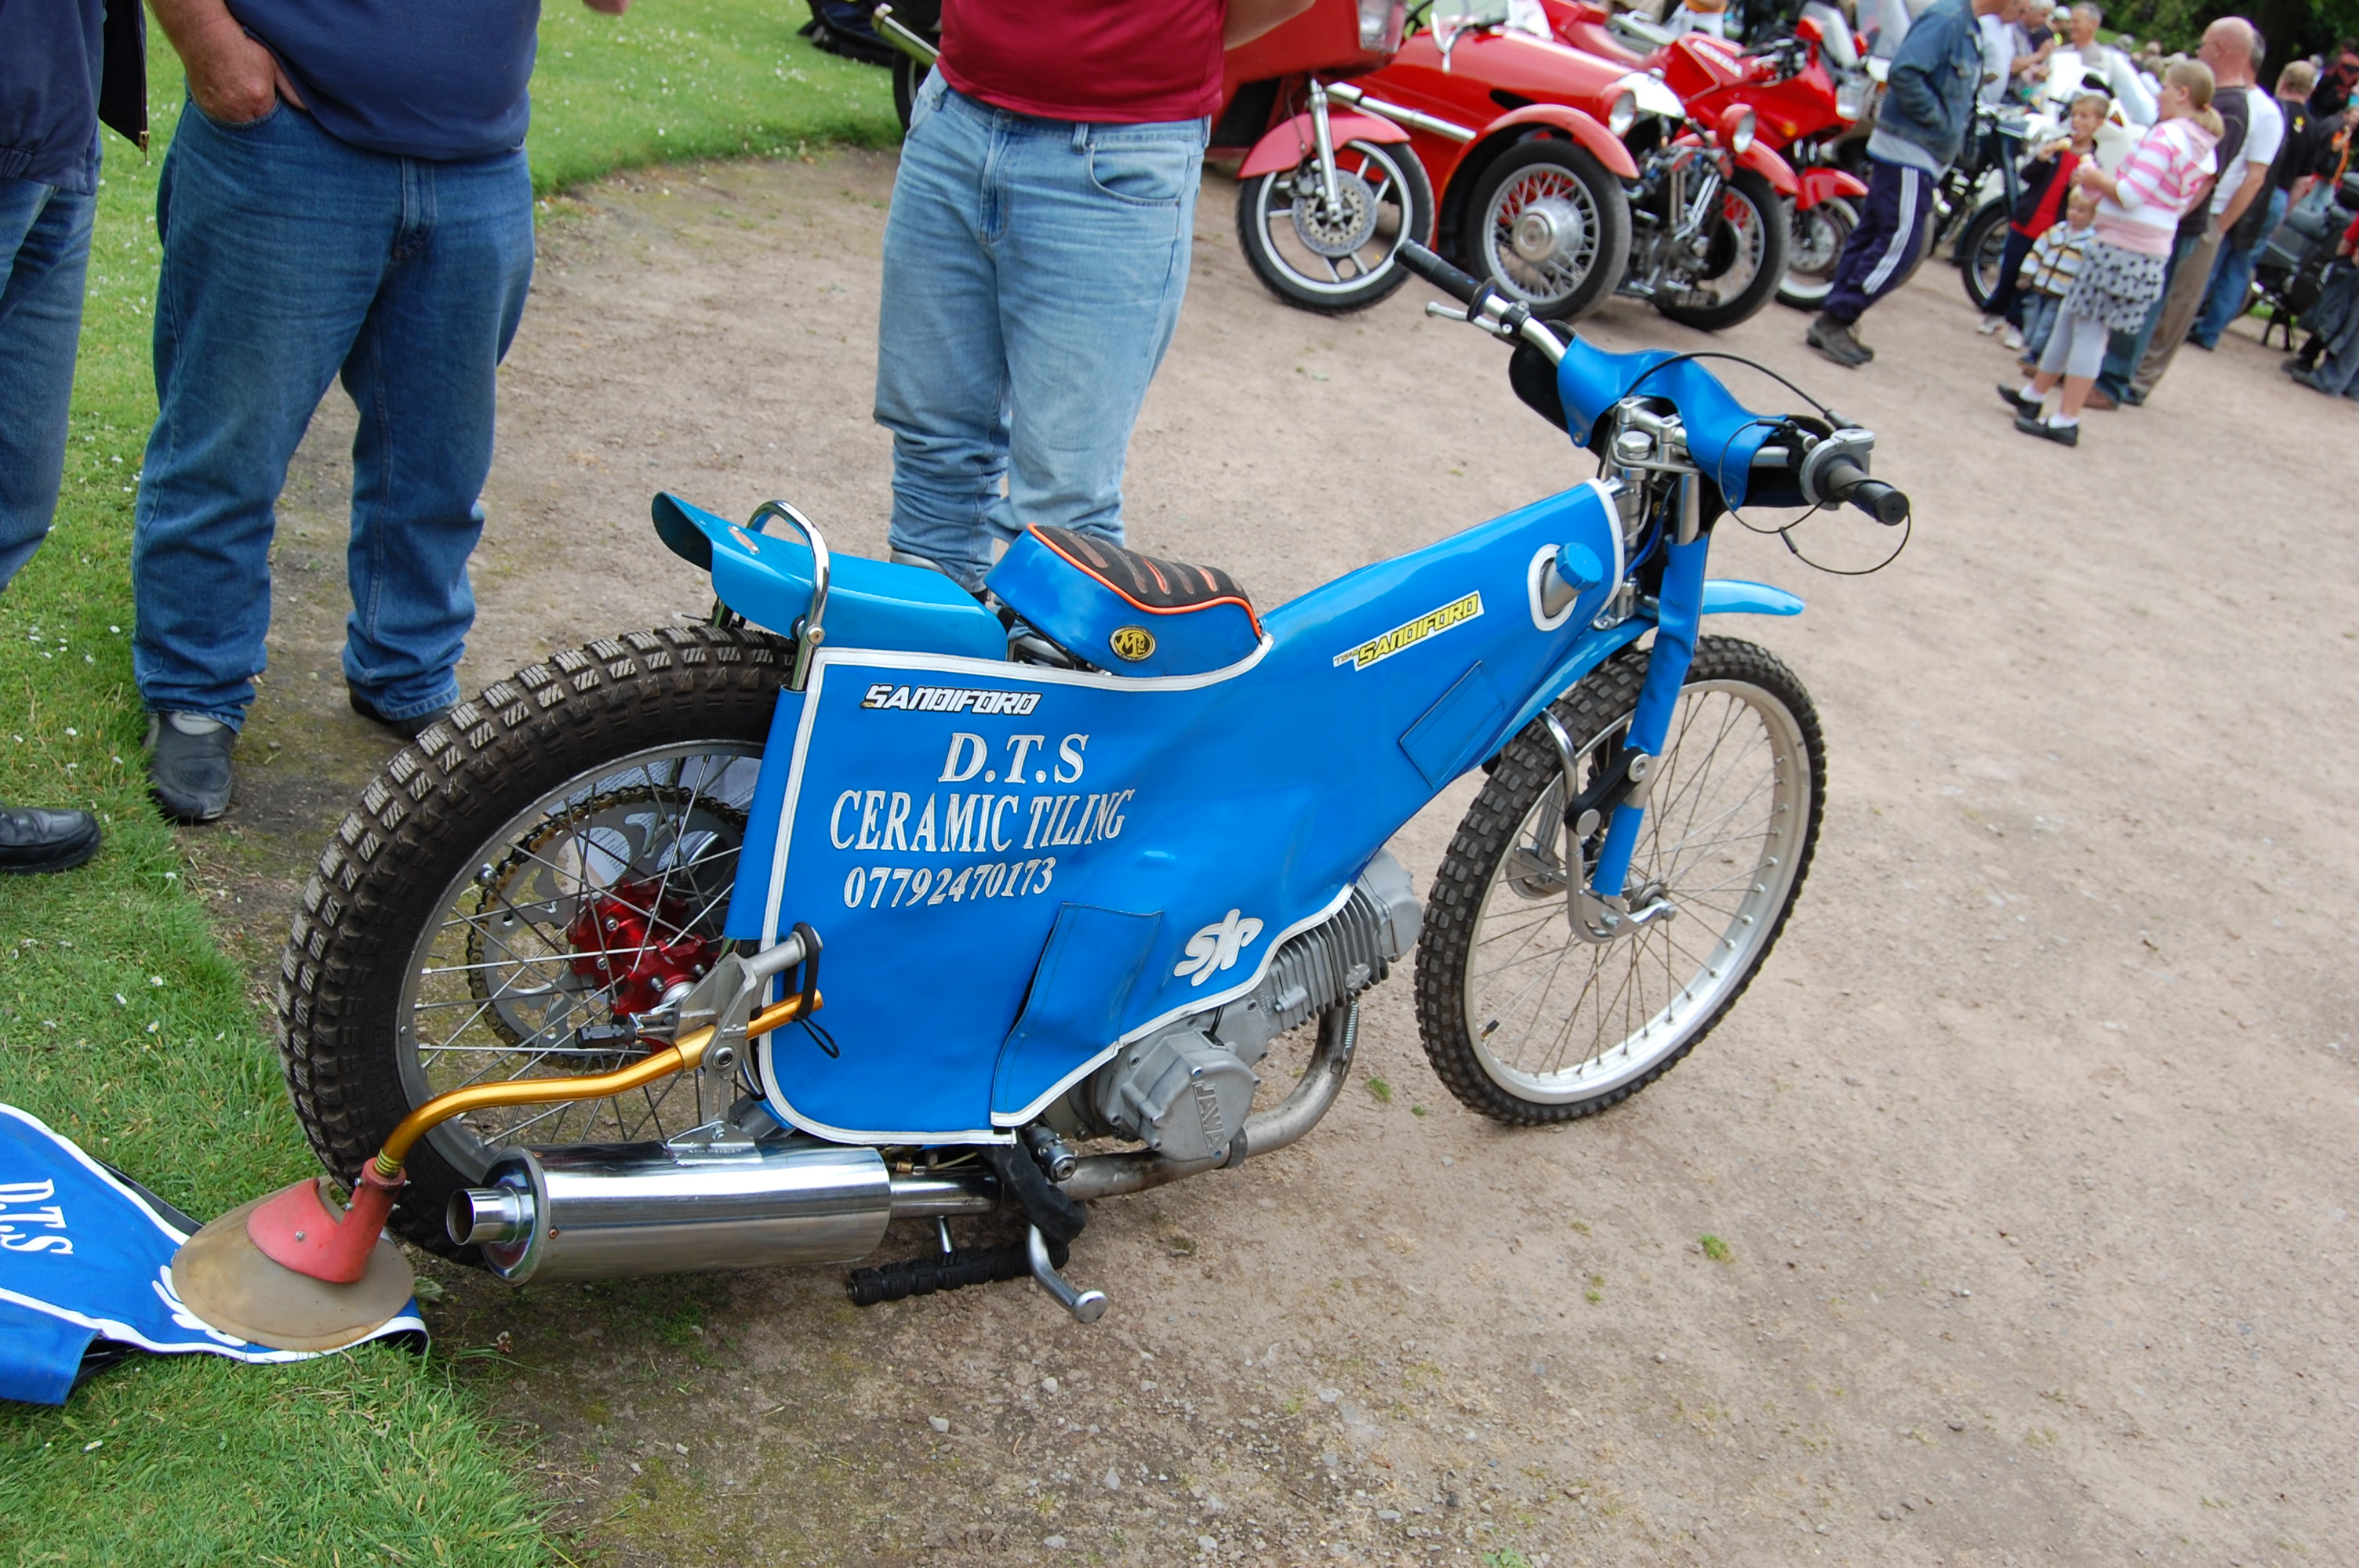 Used Dirt Track Race Car Parts For Sale